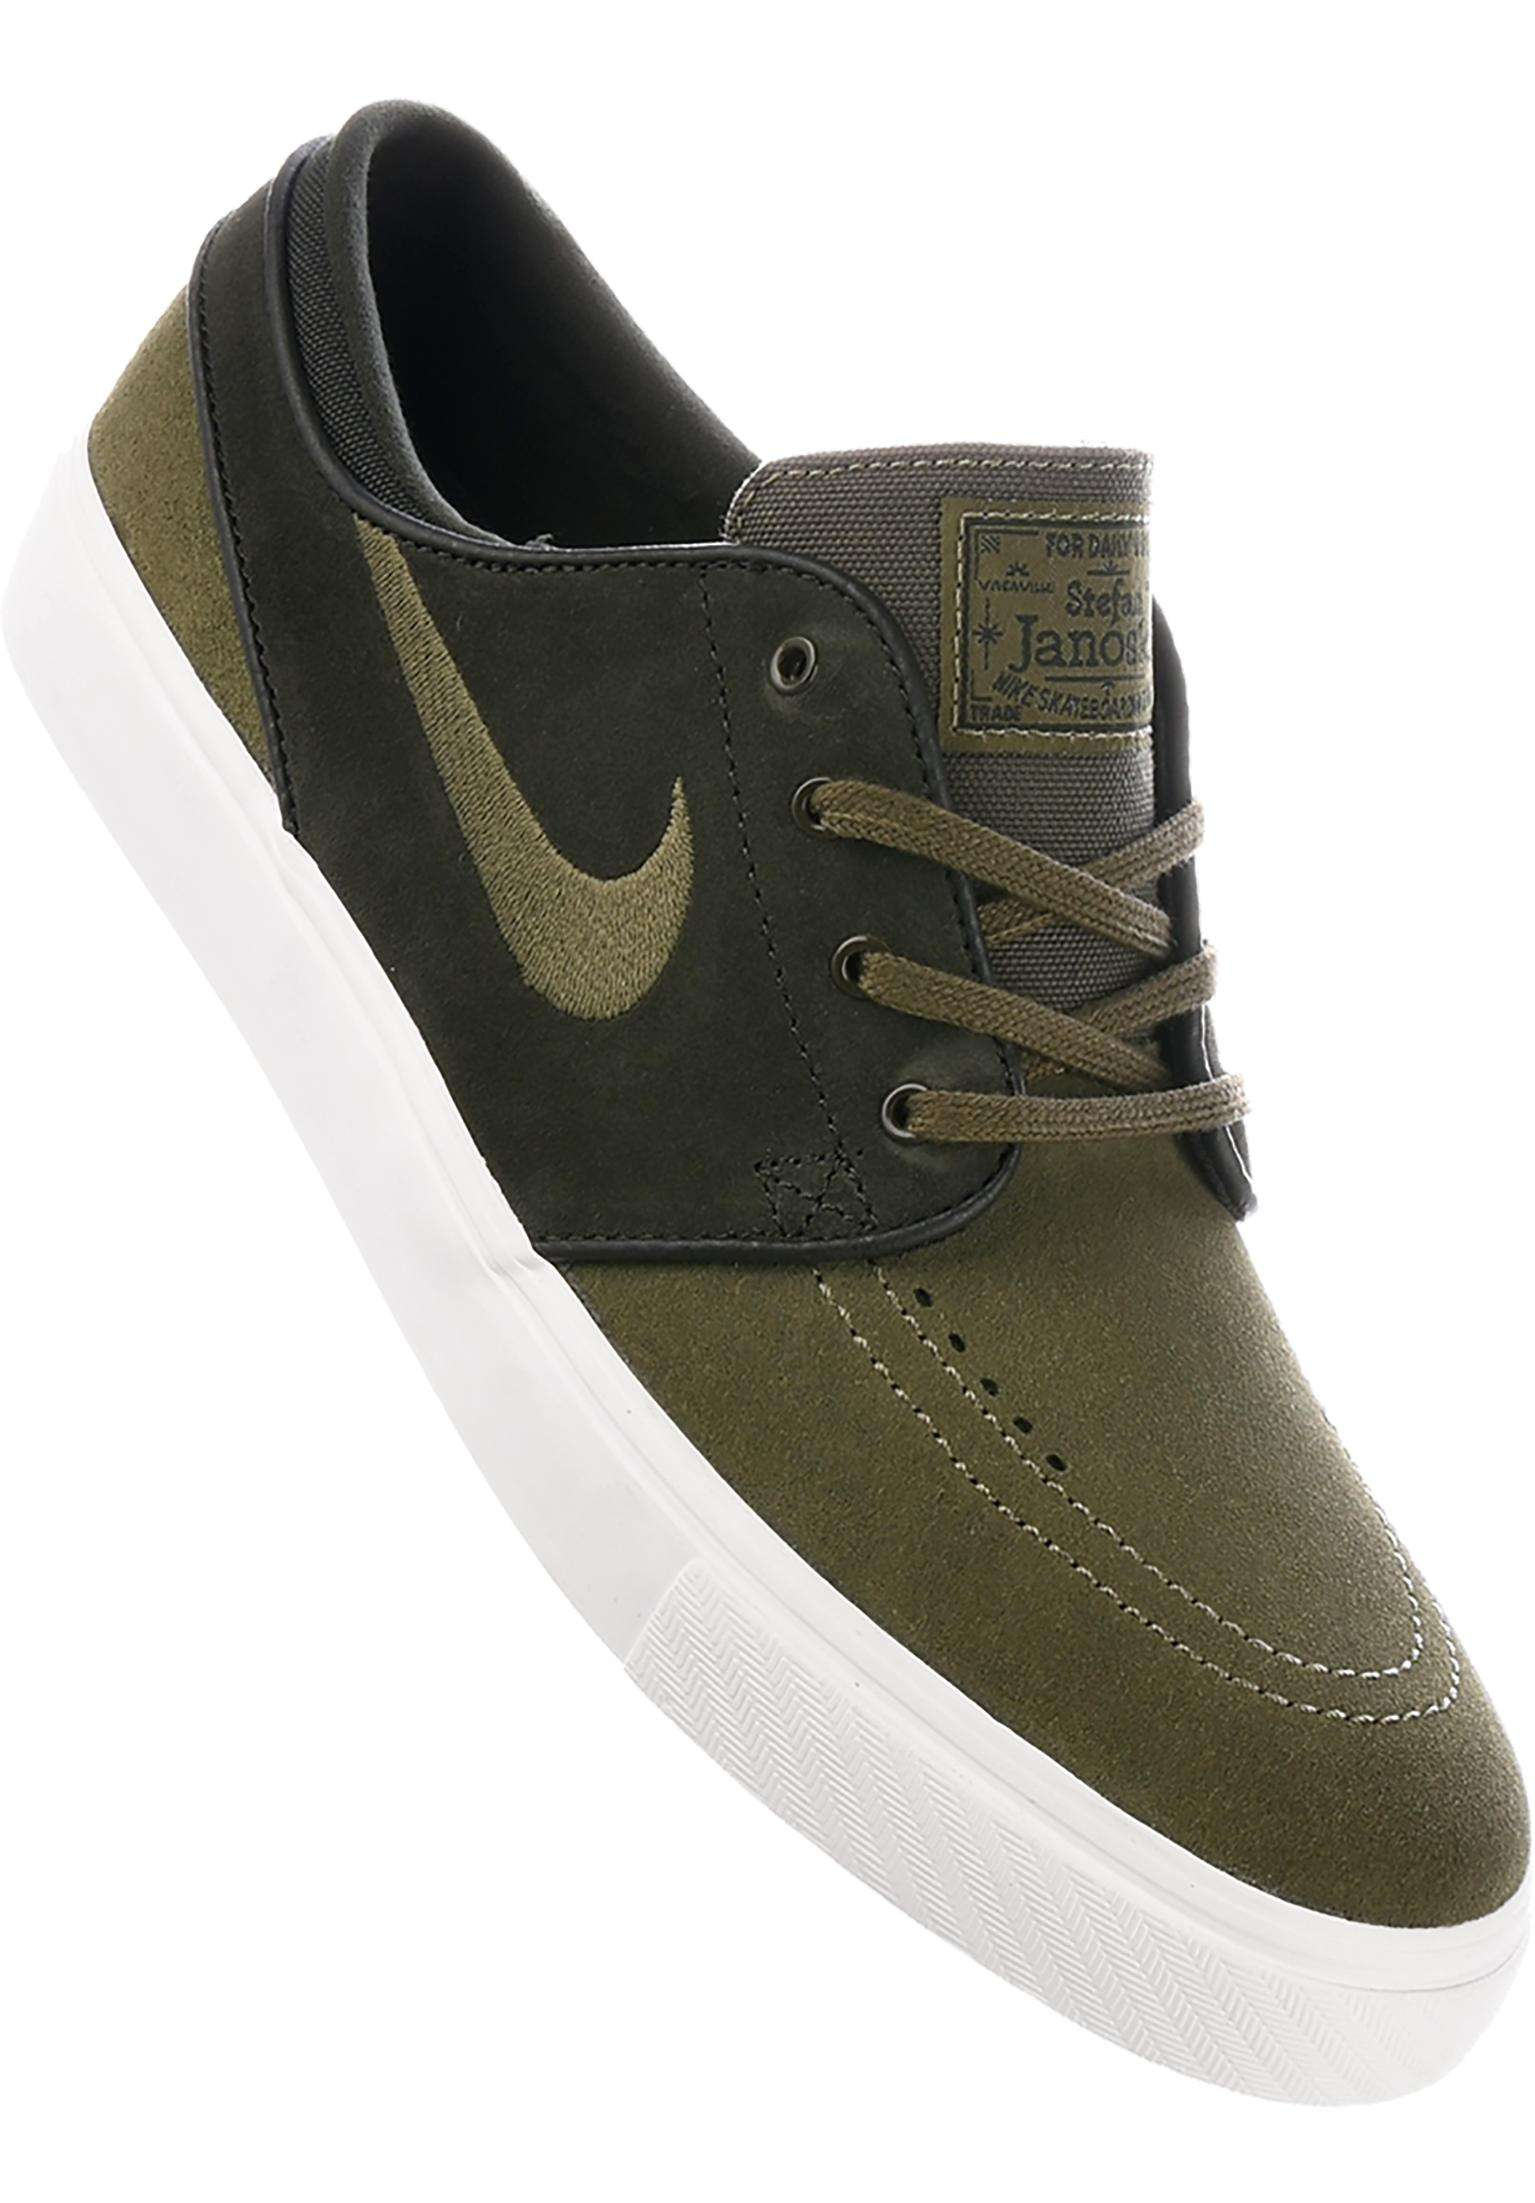 9d9b595b101f Zoom Stefan Janoski Nike SB All Shoes in sequoia-meidumolive for Men ...